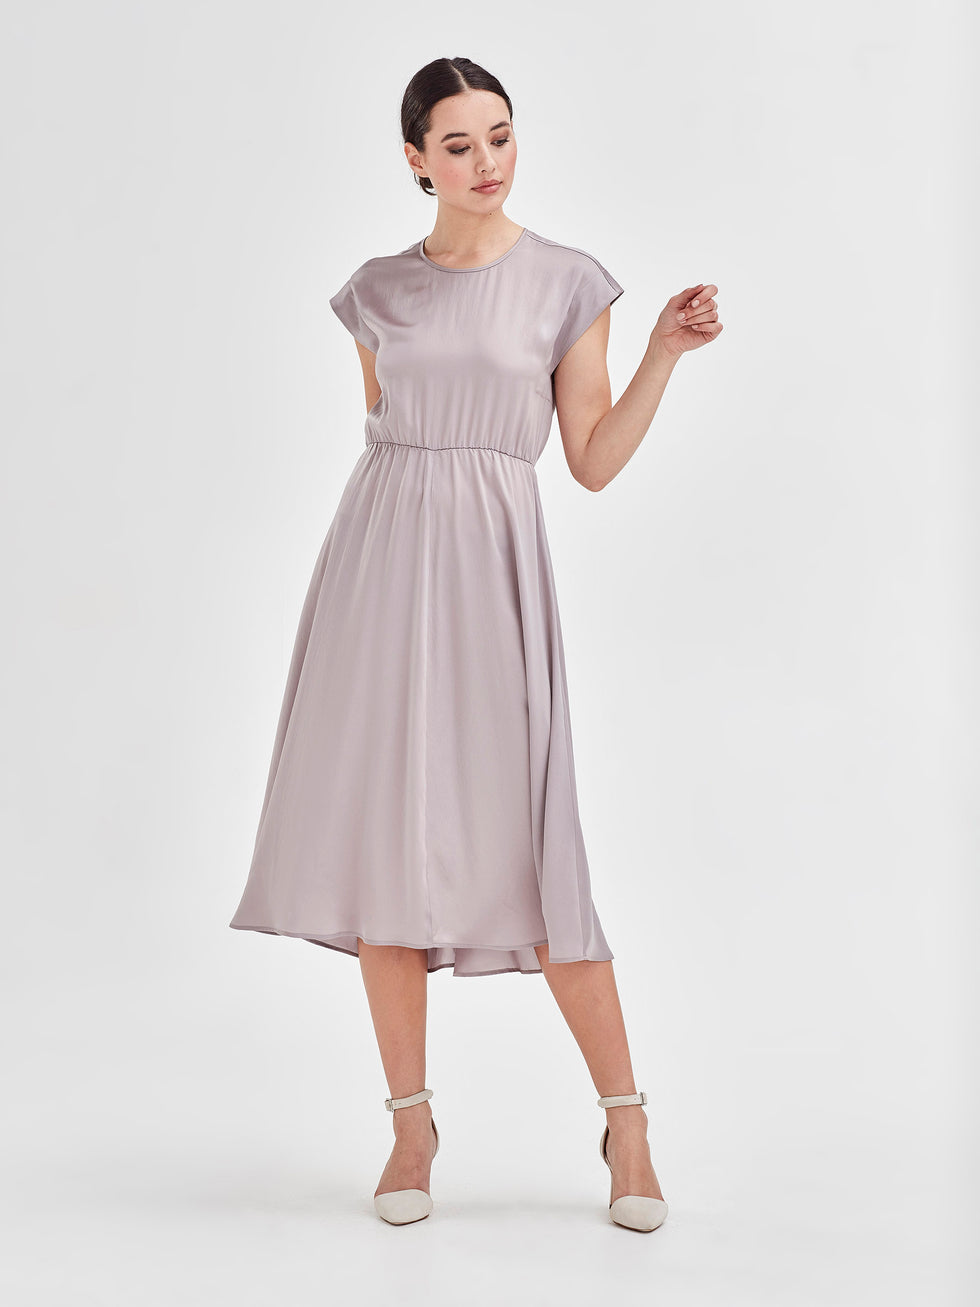 Ella Dress (Satin Triacetate) Golden 1